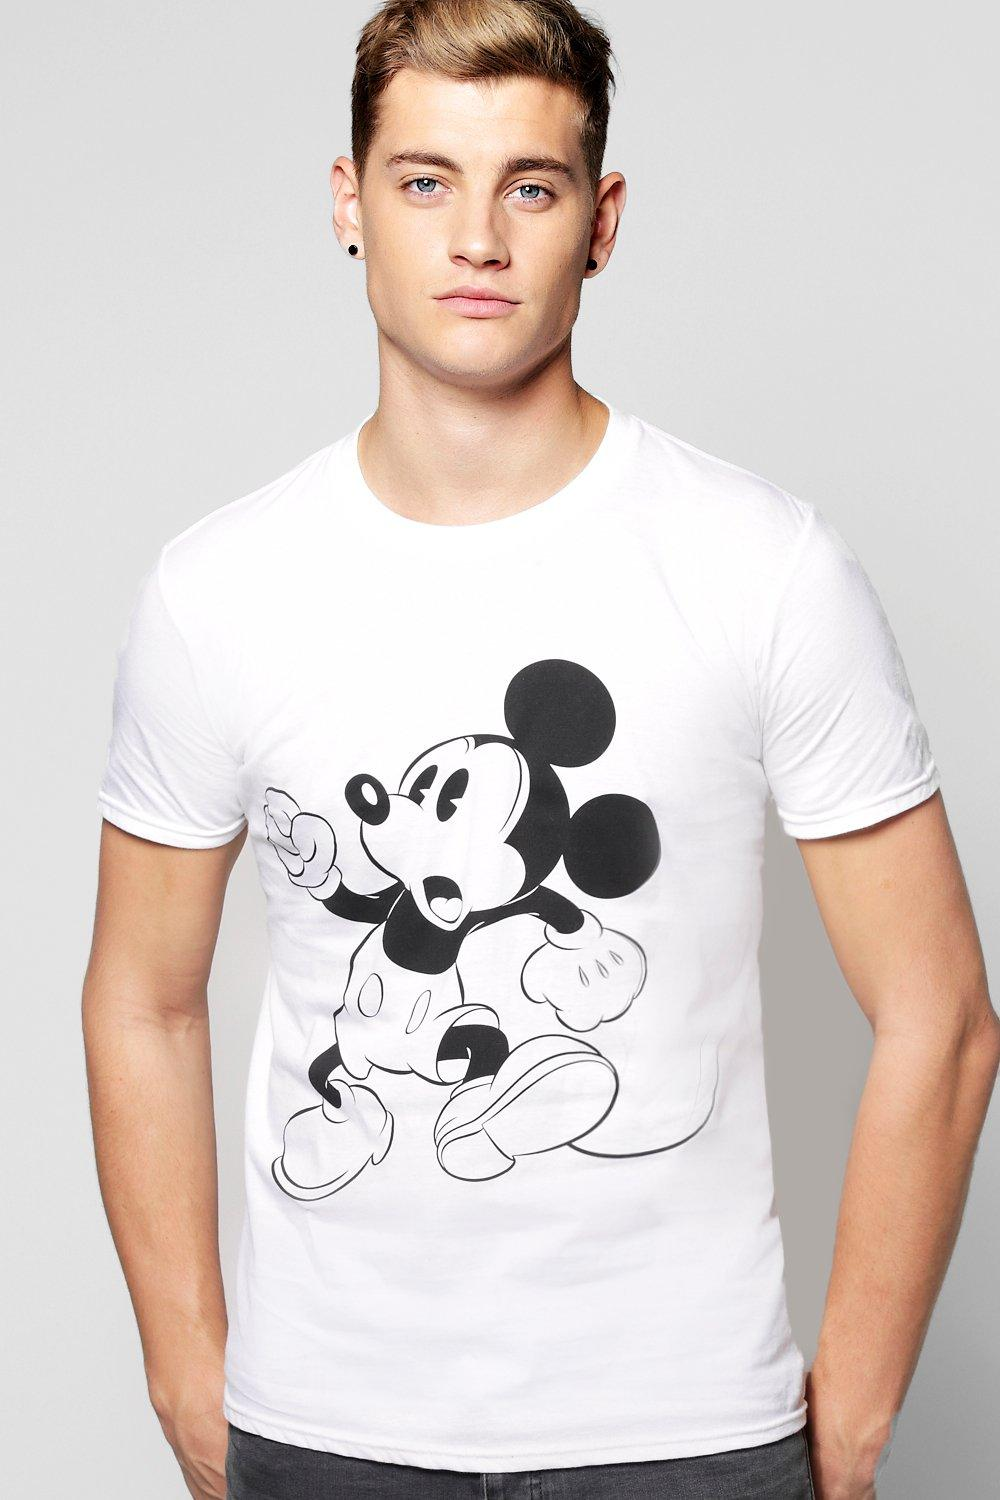 Vintage Mickey Mouse Print T-Shirt